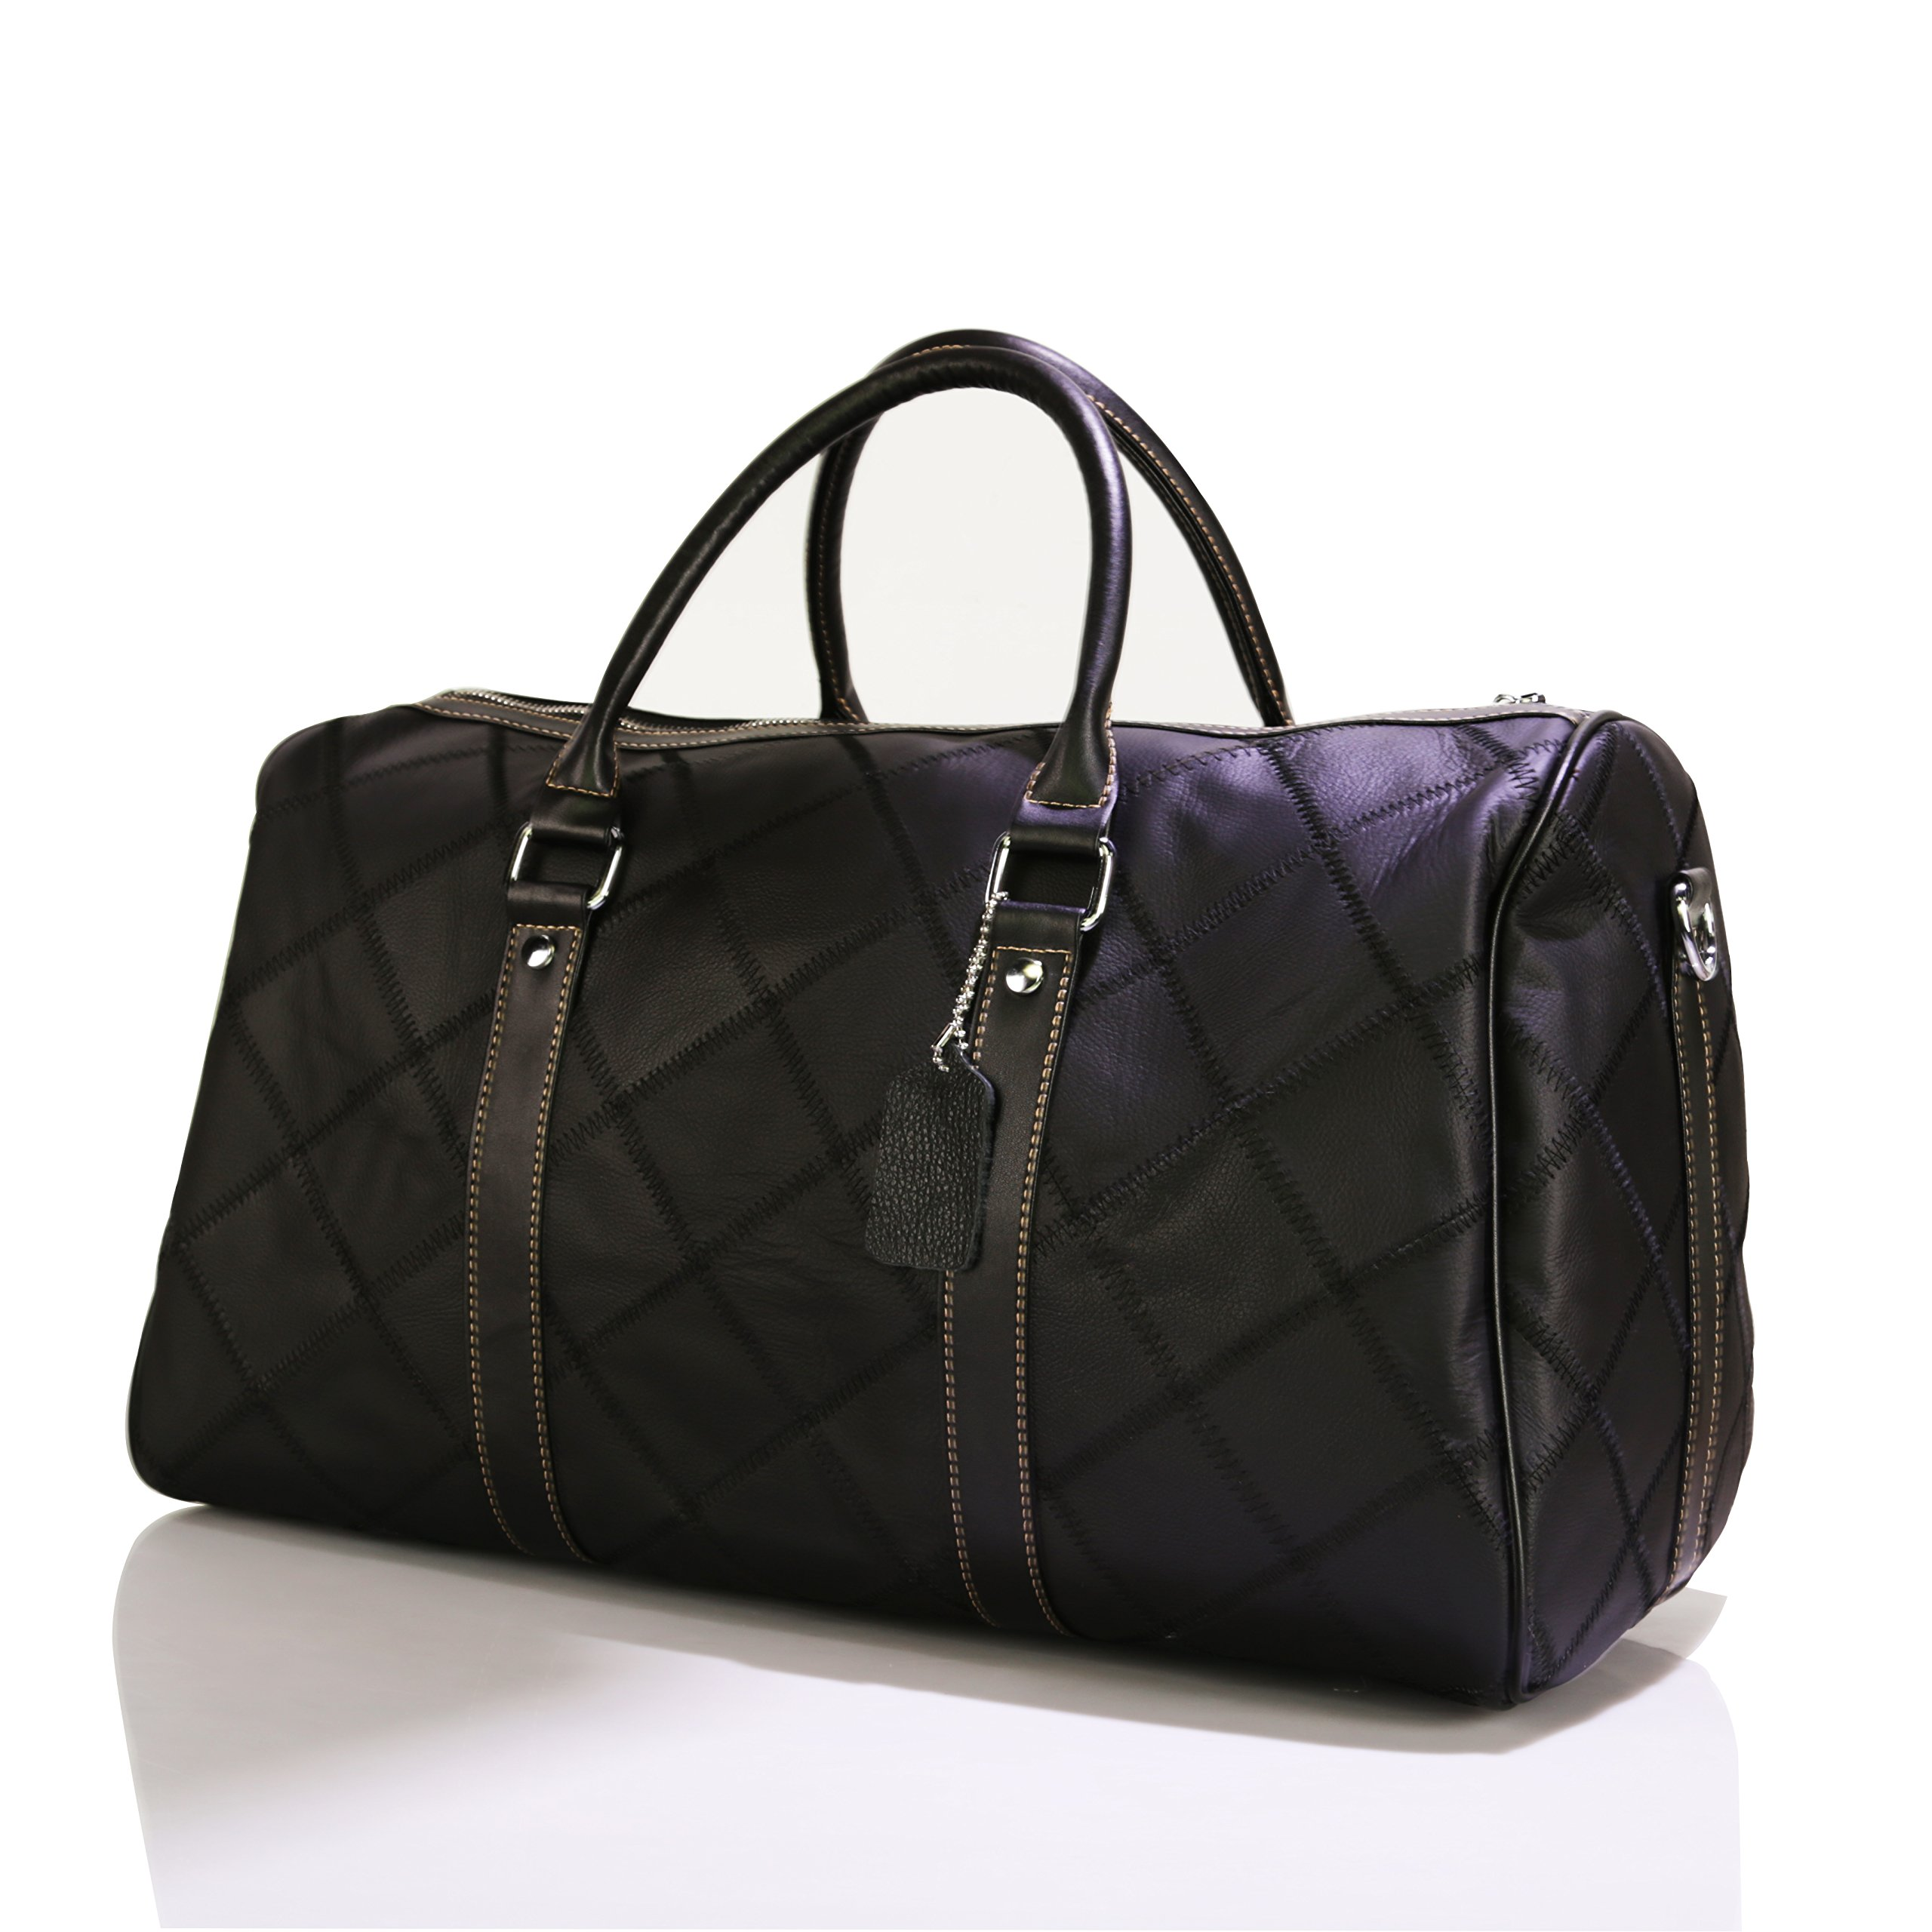 Leather Travel Duffel Bag Weekender Overnight Carry On Luggage Luxurious Vintage Leather Perfect Fit to Airplane Underseat (Black) by Gionar (Image #2)